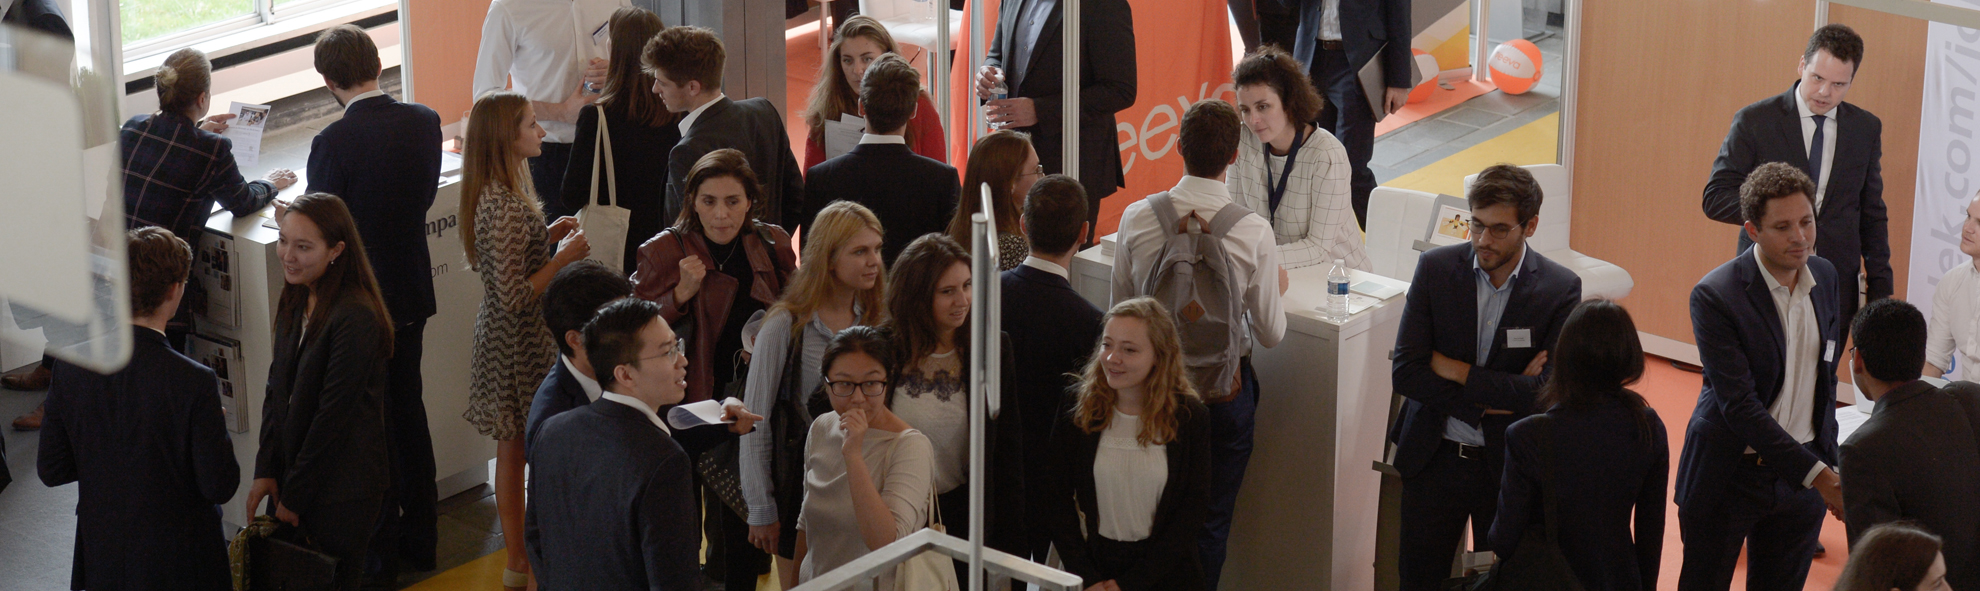 HEC Paris Career Fair - Recruiters